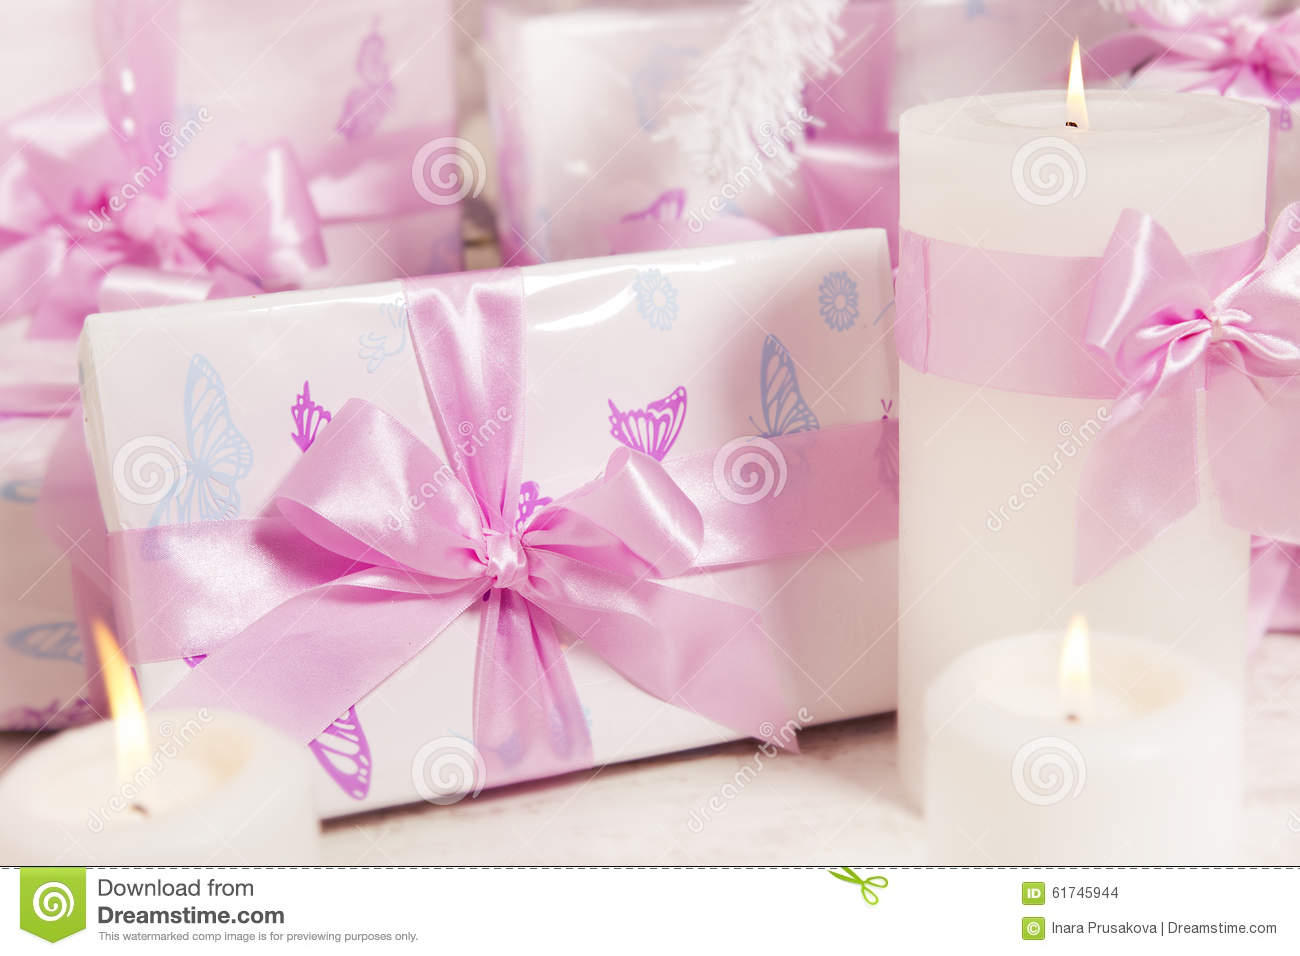 Presents Gift Boxes, Silk Ribbon Bow White Pink Color, Woman